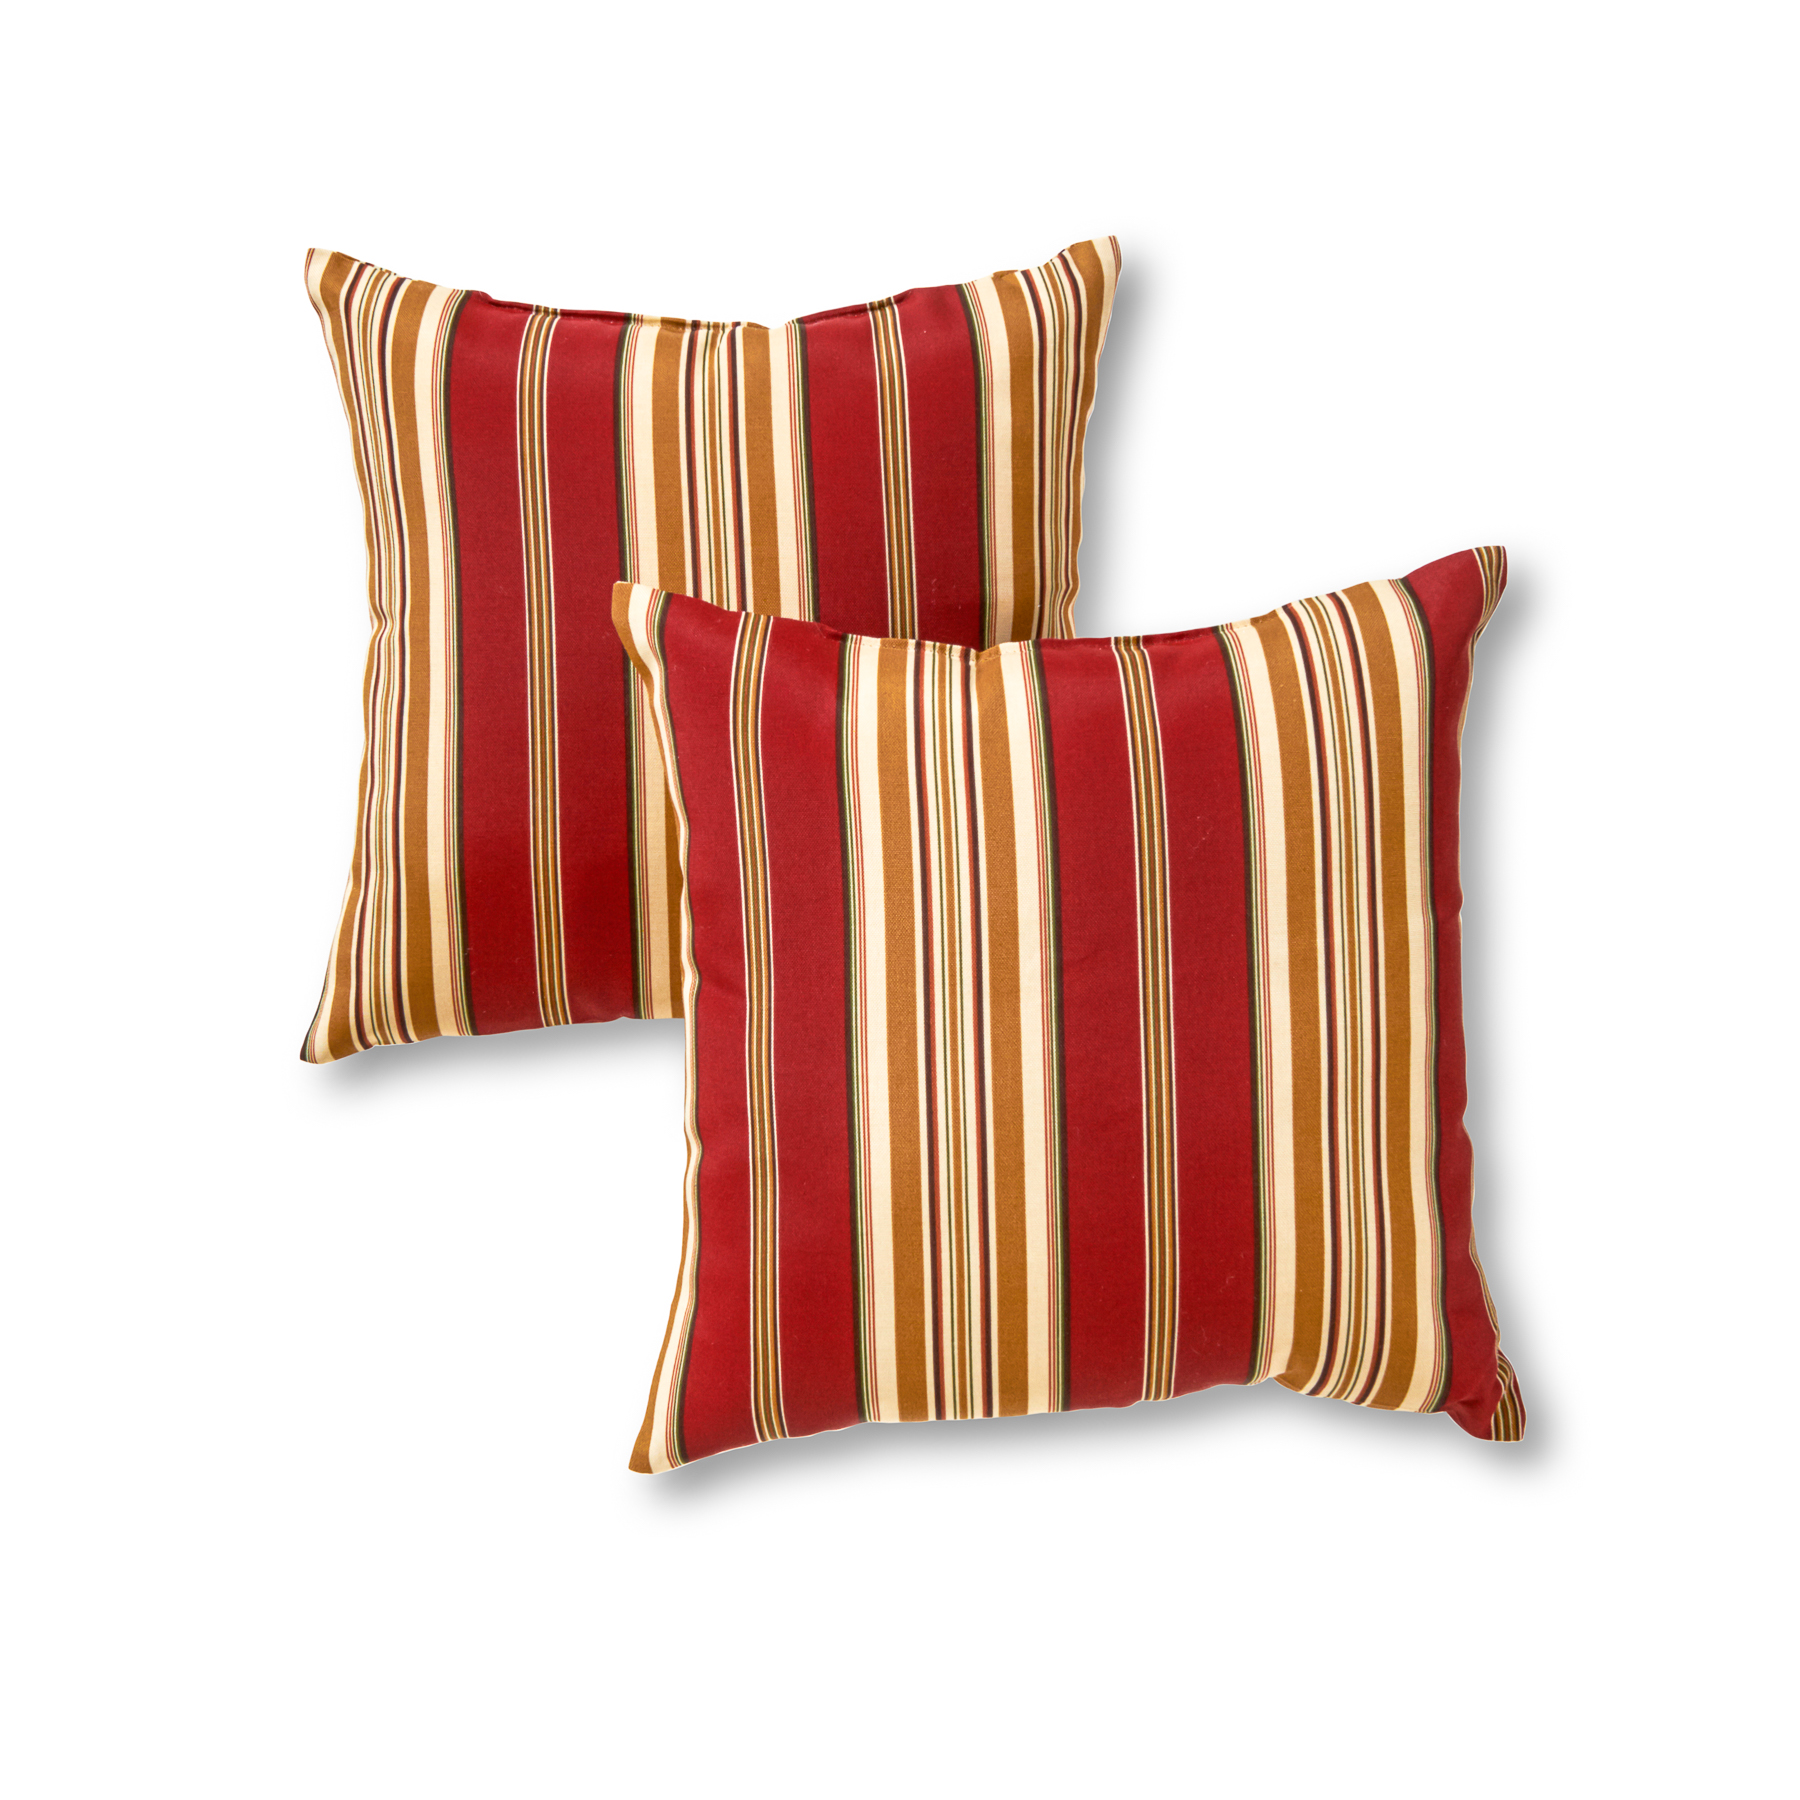 Greendale Home Fashions Roma Stripe Outdoor Accent Pillow, Set of 2